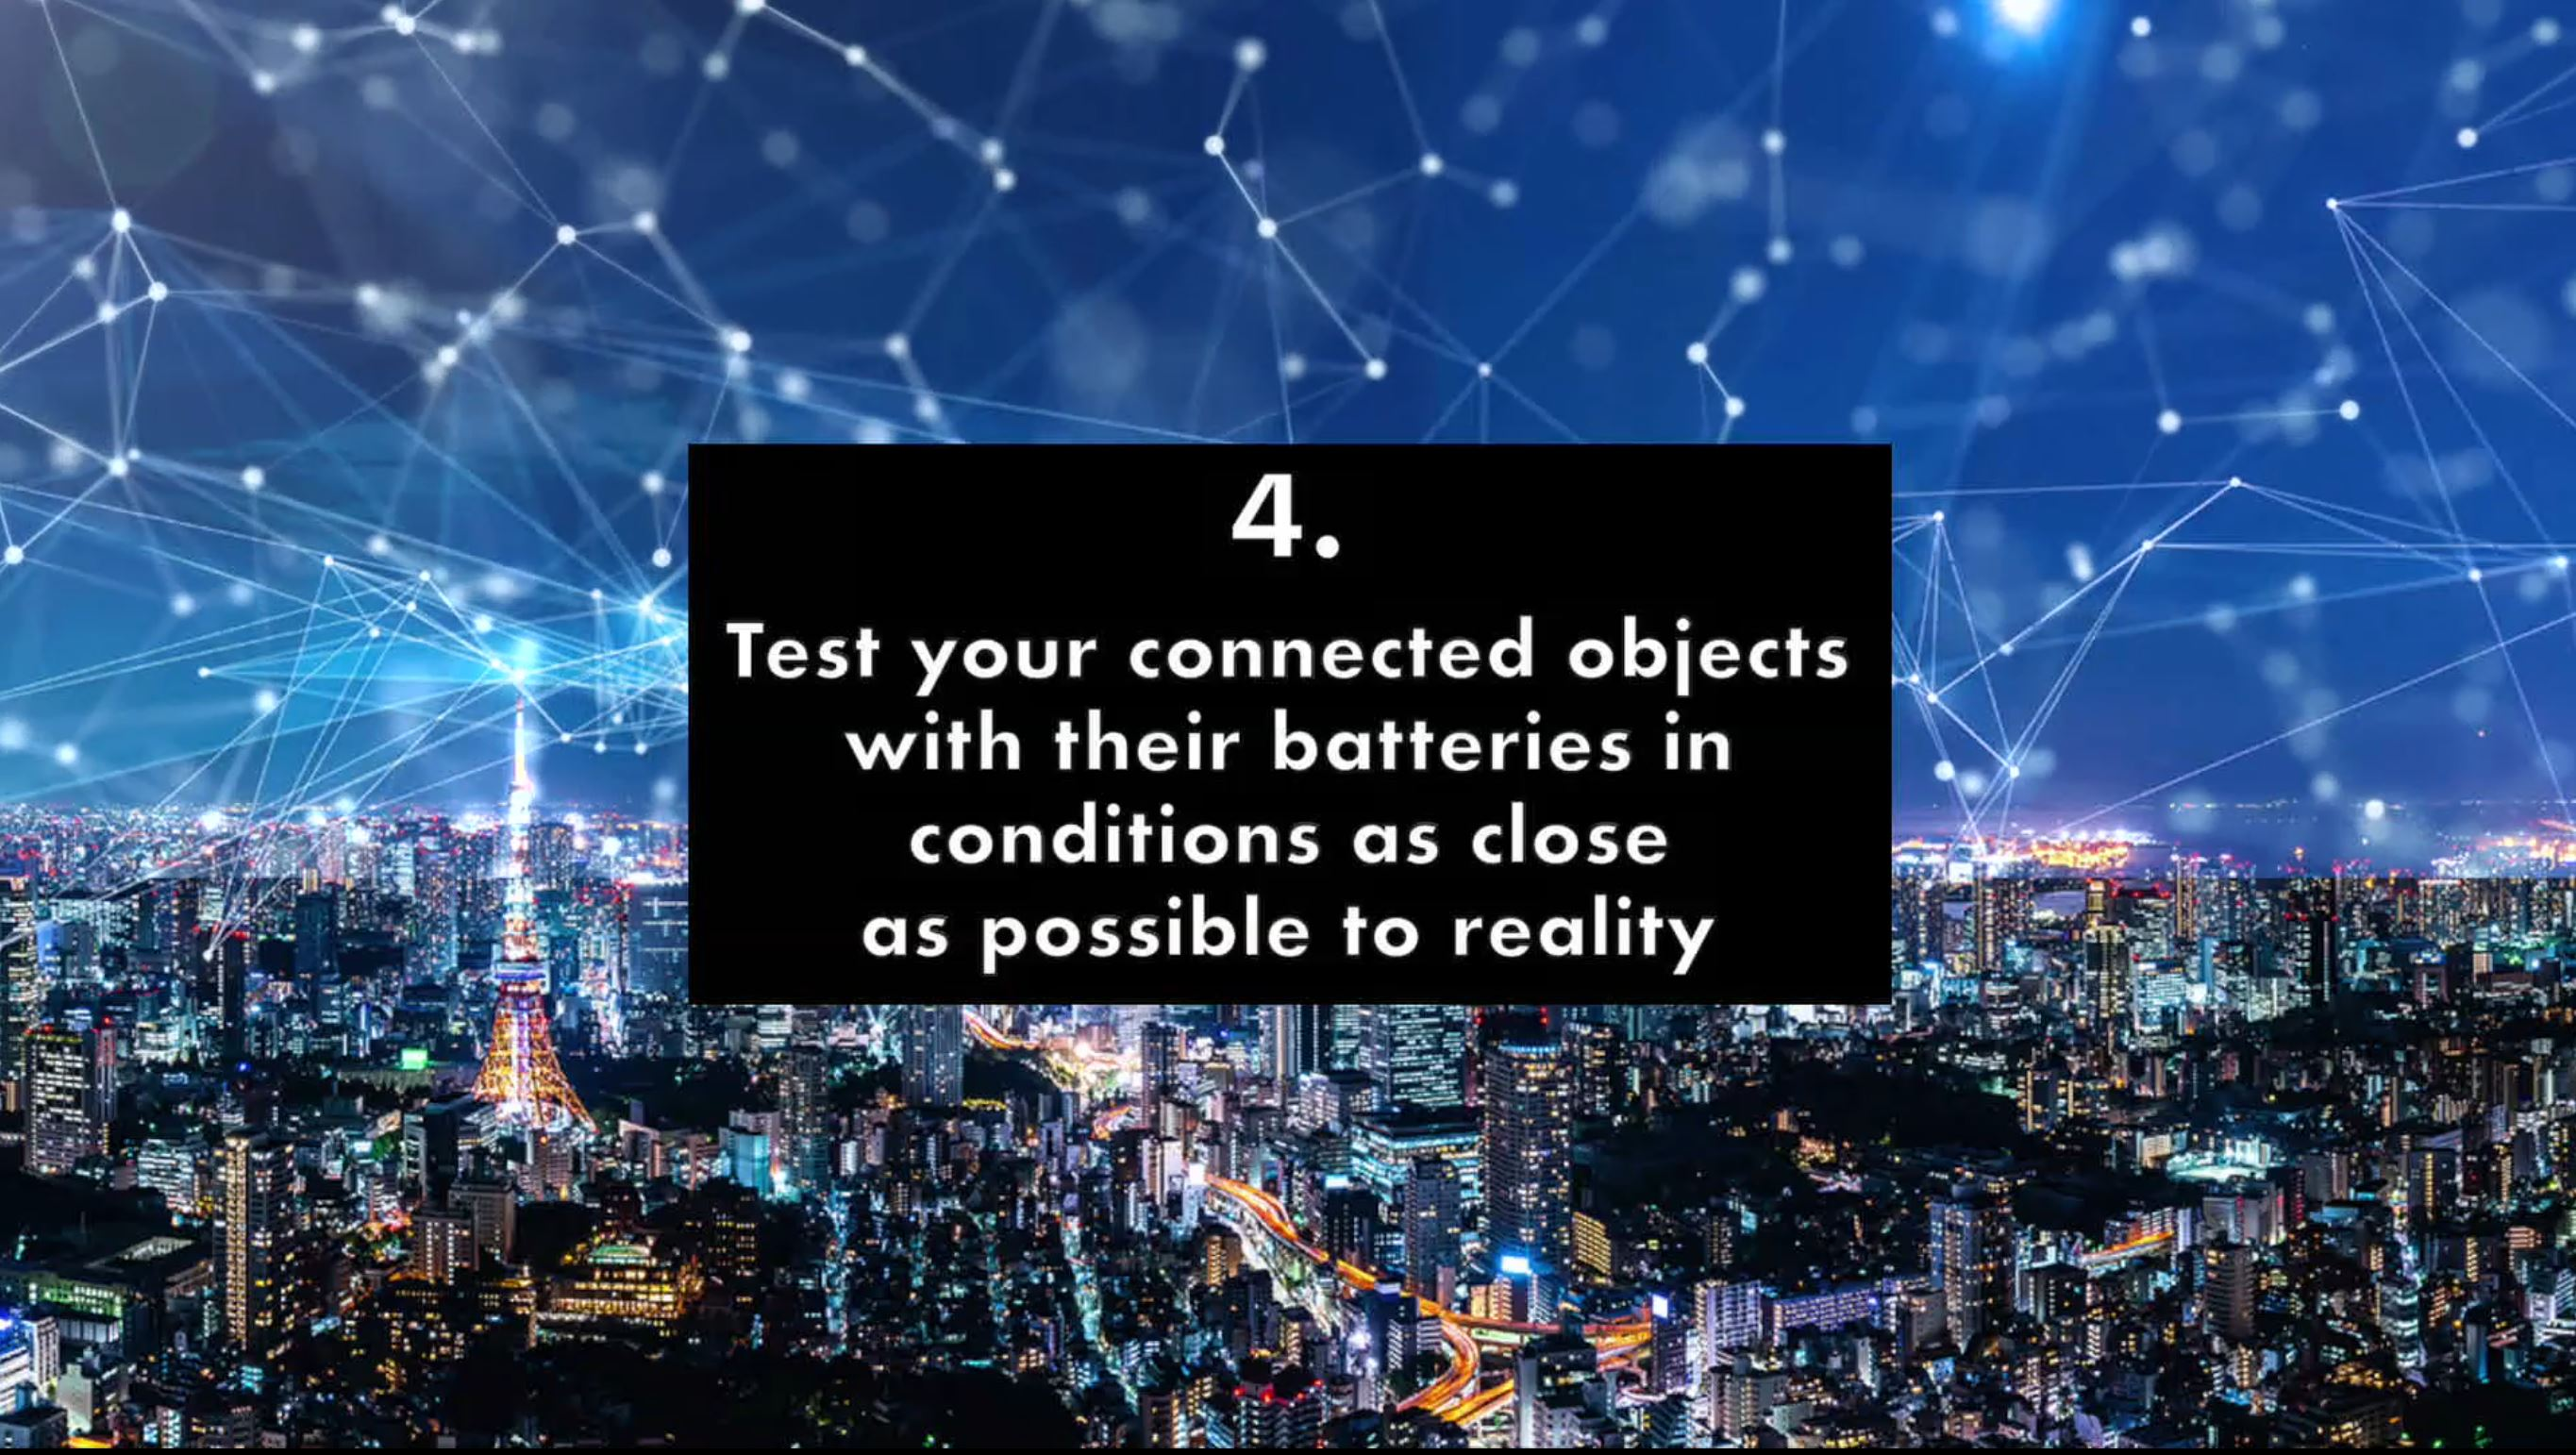 Tip #4 for IoT designers